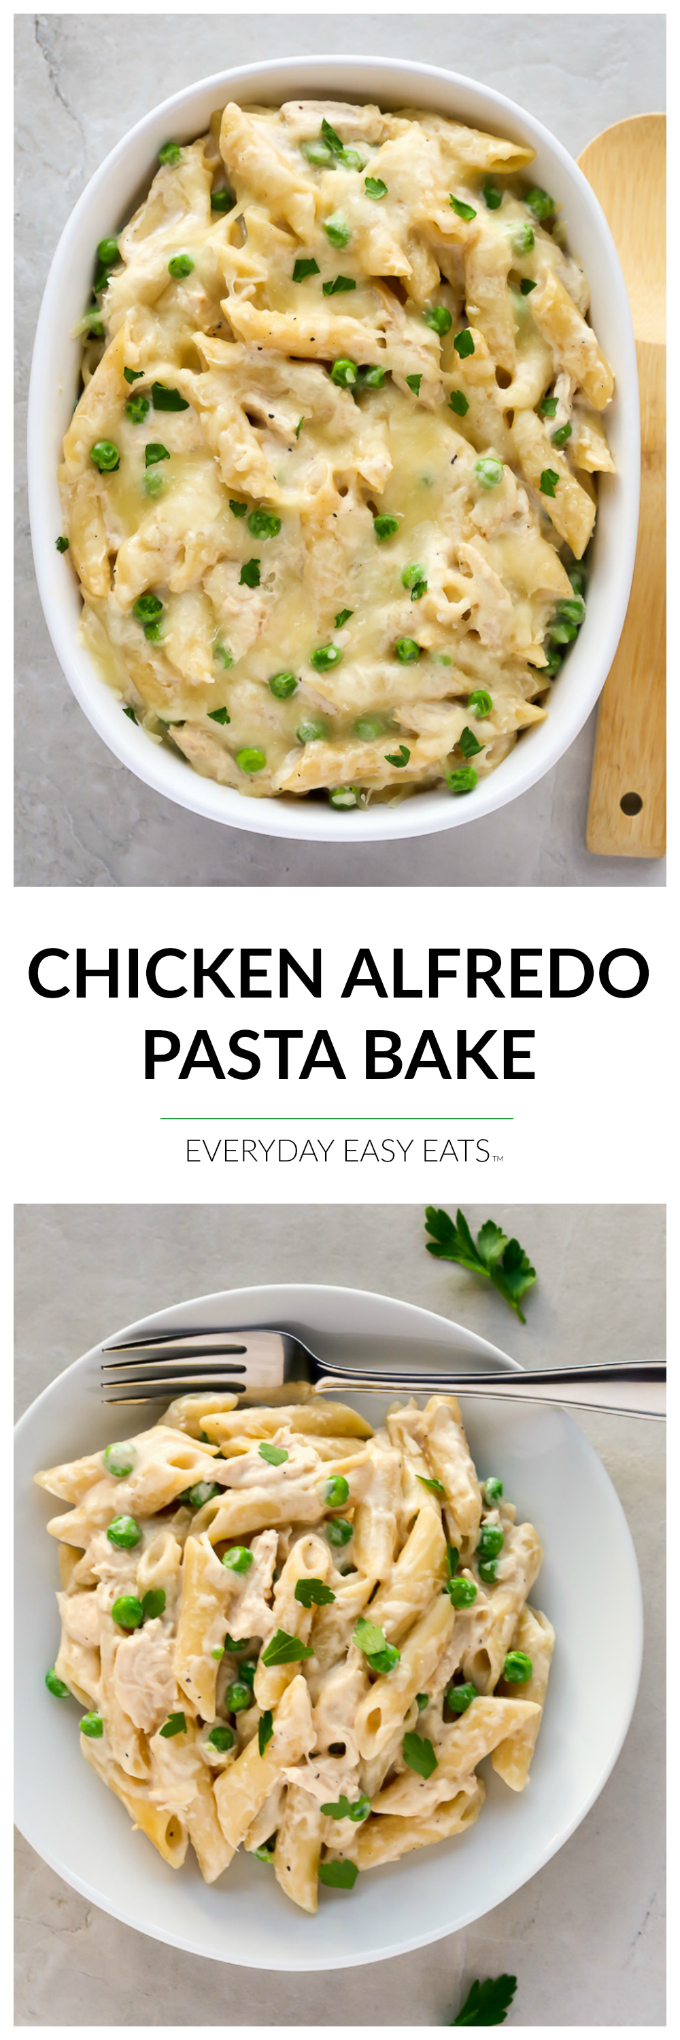 This Chicken Alfredo Pasta Bake recipe requires only 6 ingredients and is ready to eat in about a half an hour! | EverydayEasyEats.com